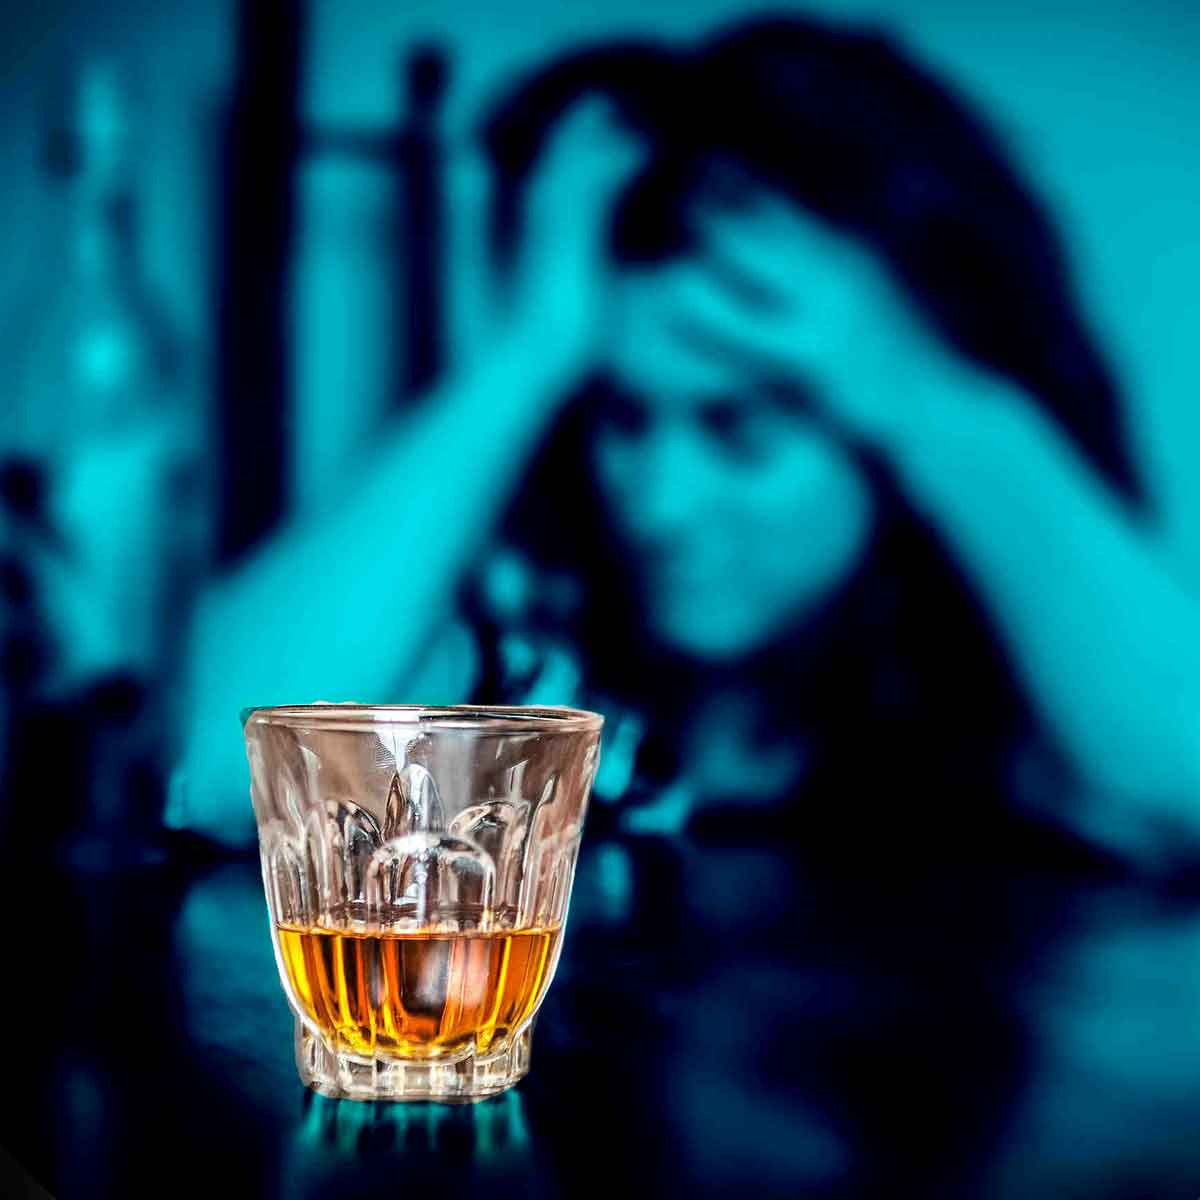 person suffering from alcohol addiction